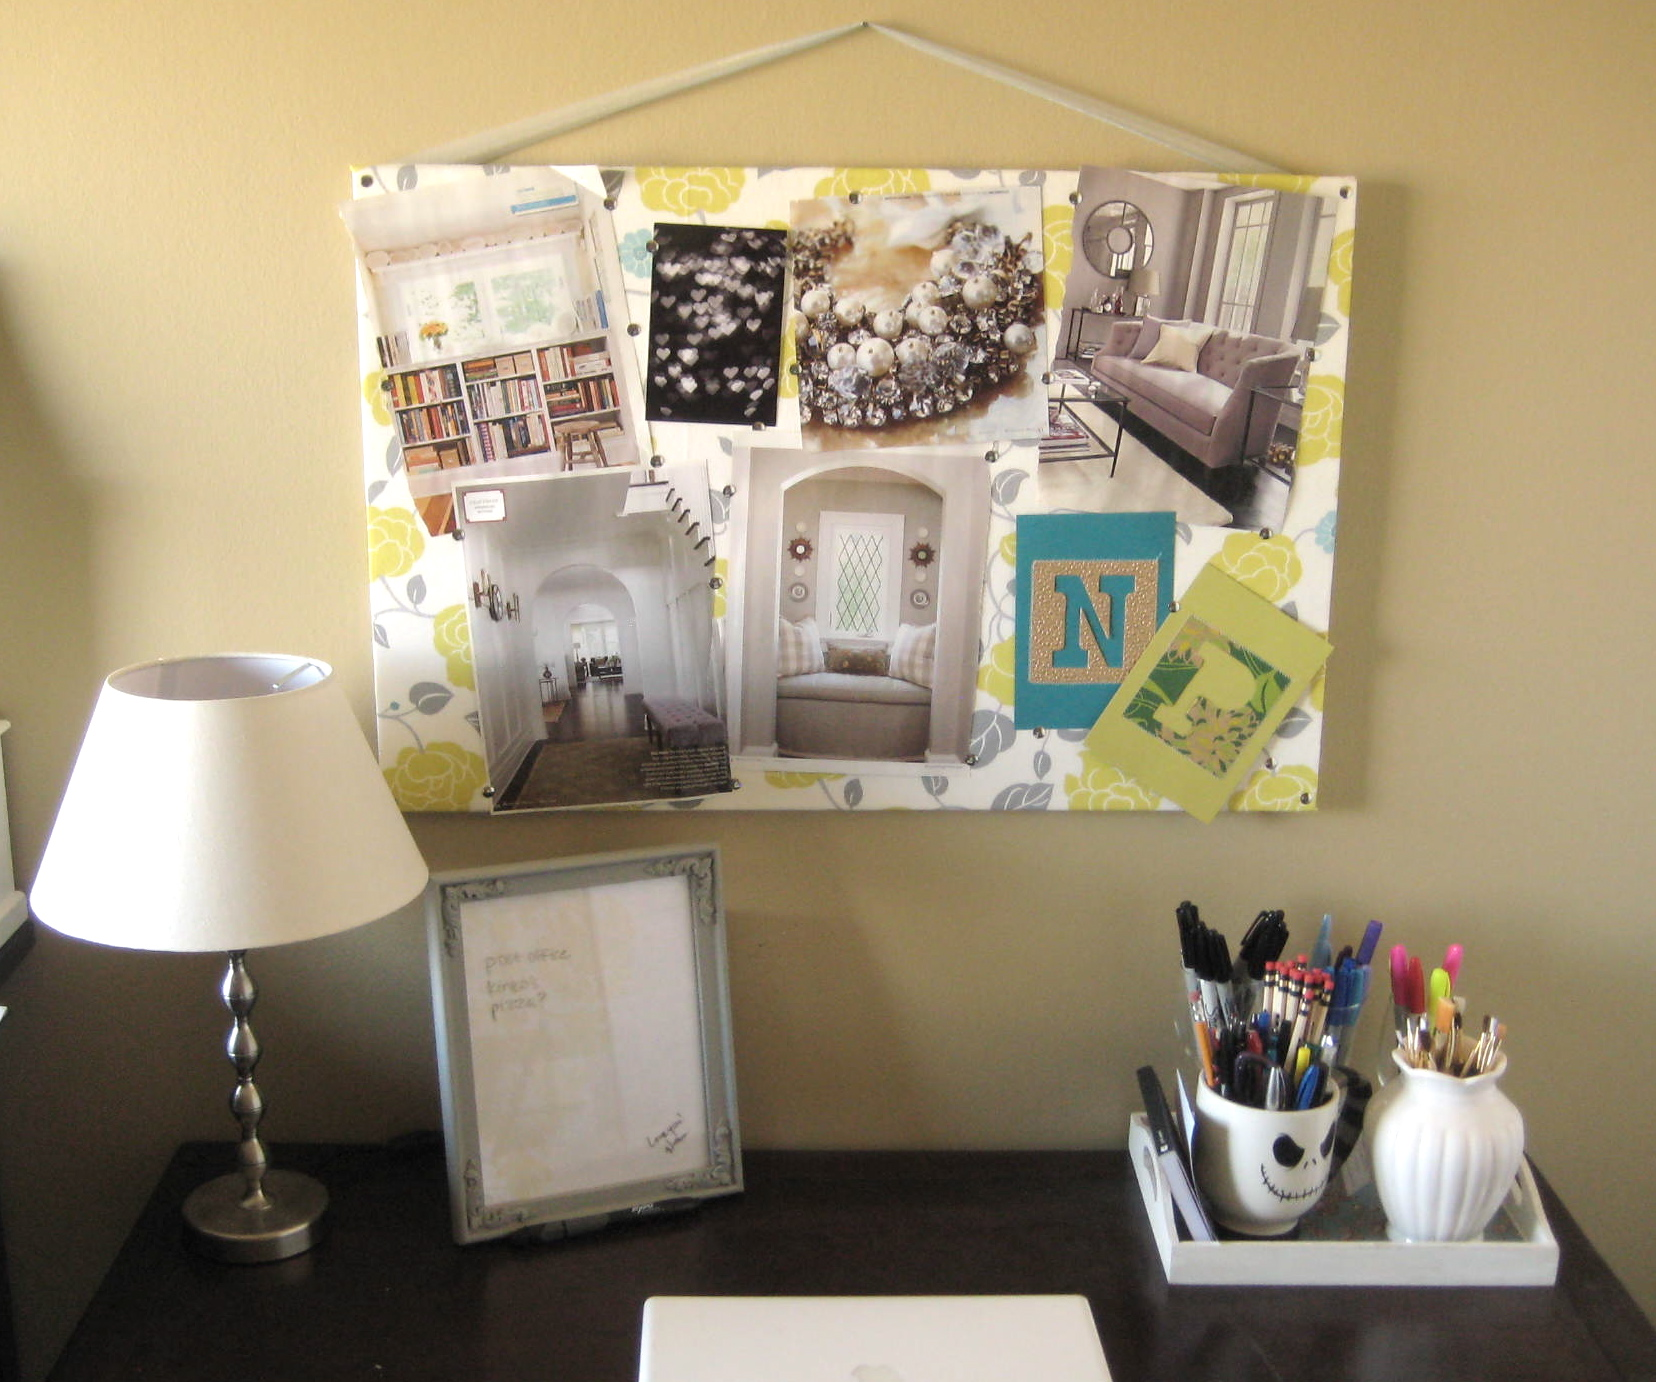 Diy cork board tutorial for Diy cork board